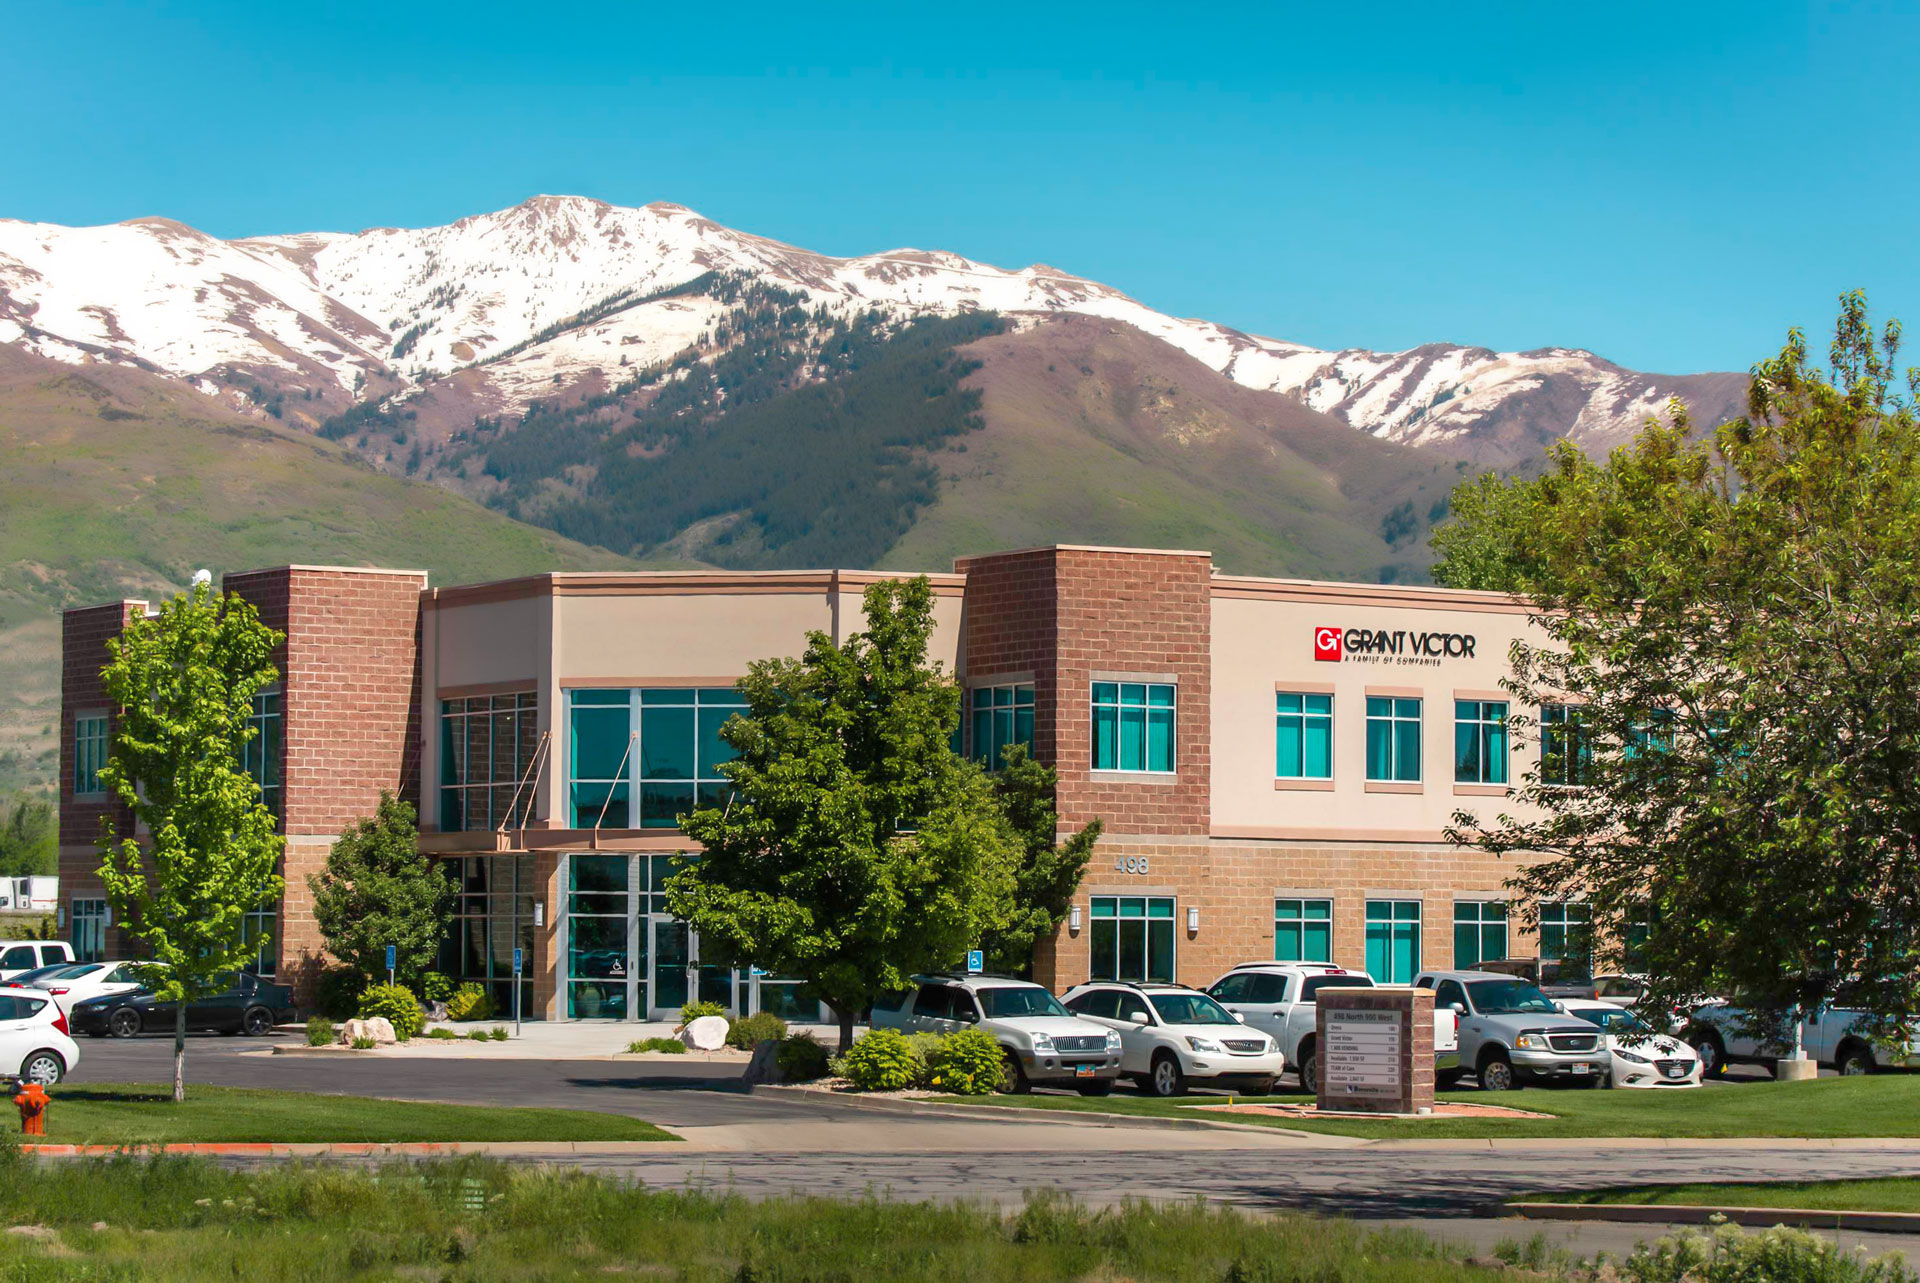 Grant Victor headquarters in Kaysville, Utah.